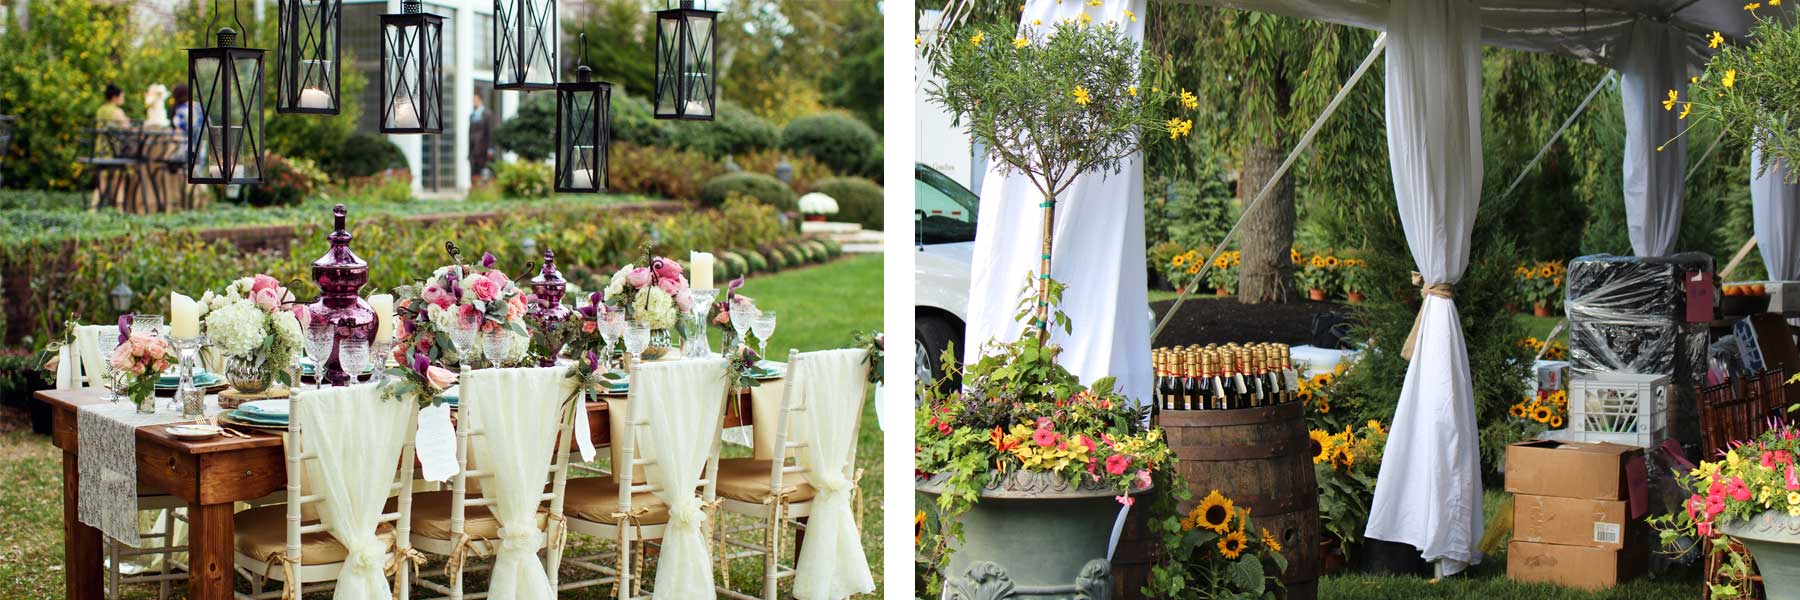 New jersey somerset county flagtown - Special Event Rentals In Hillsborough